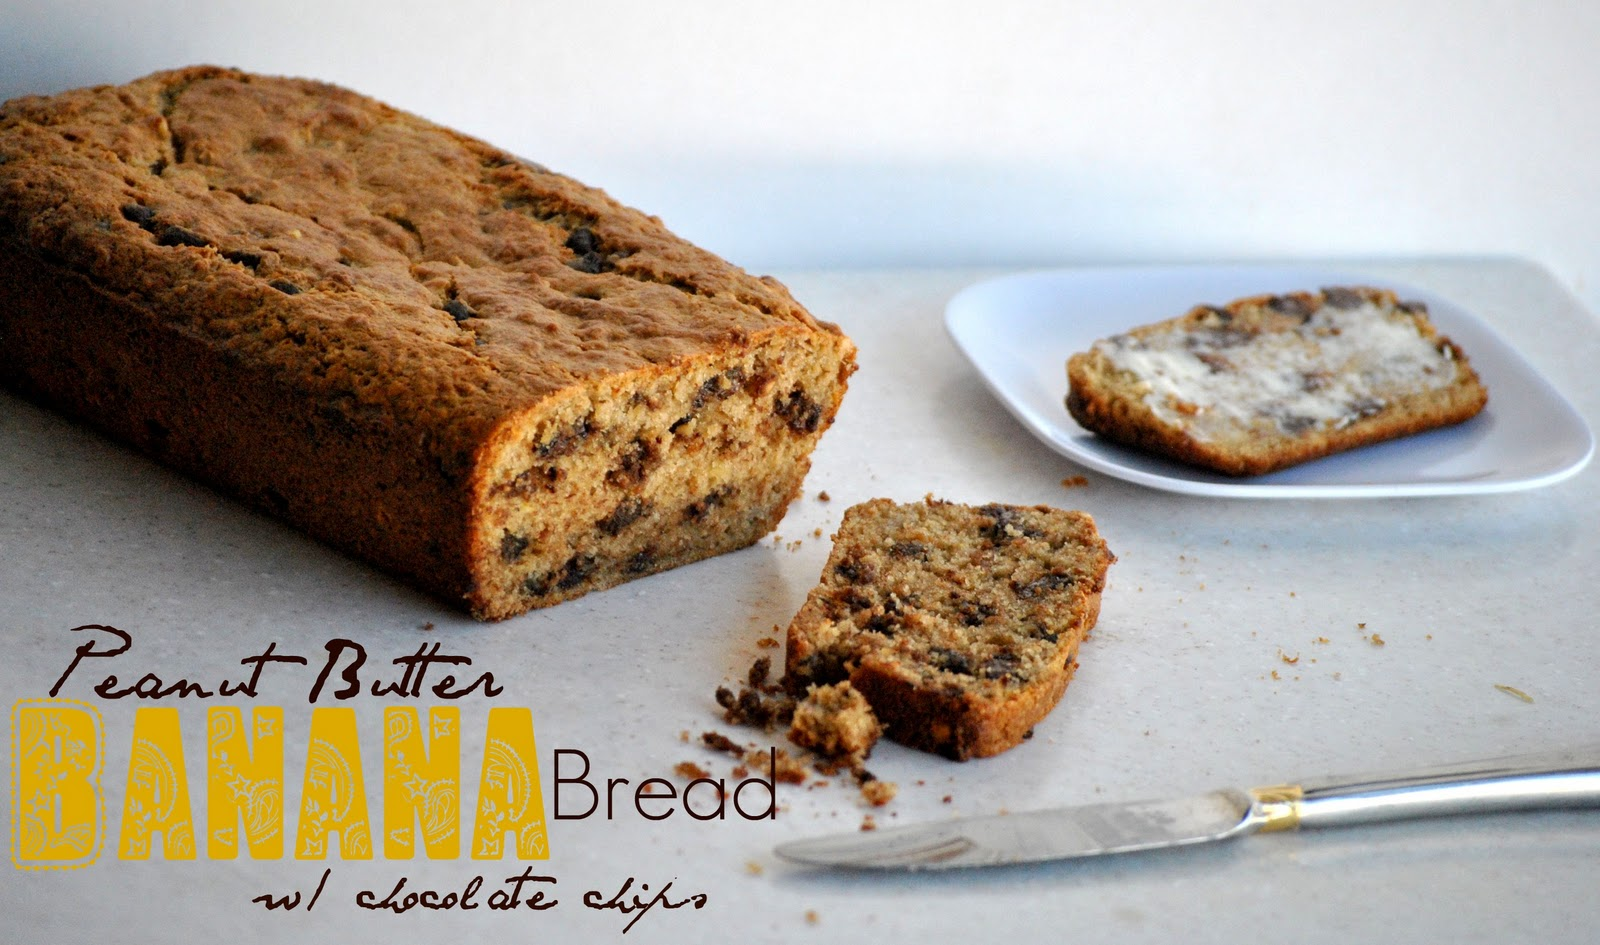 The Farm Girl Recipes: Peanut Butter Banana Bread with Chocolate Chips